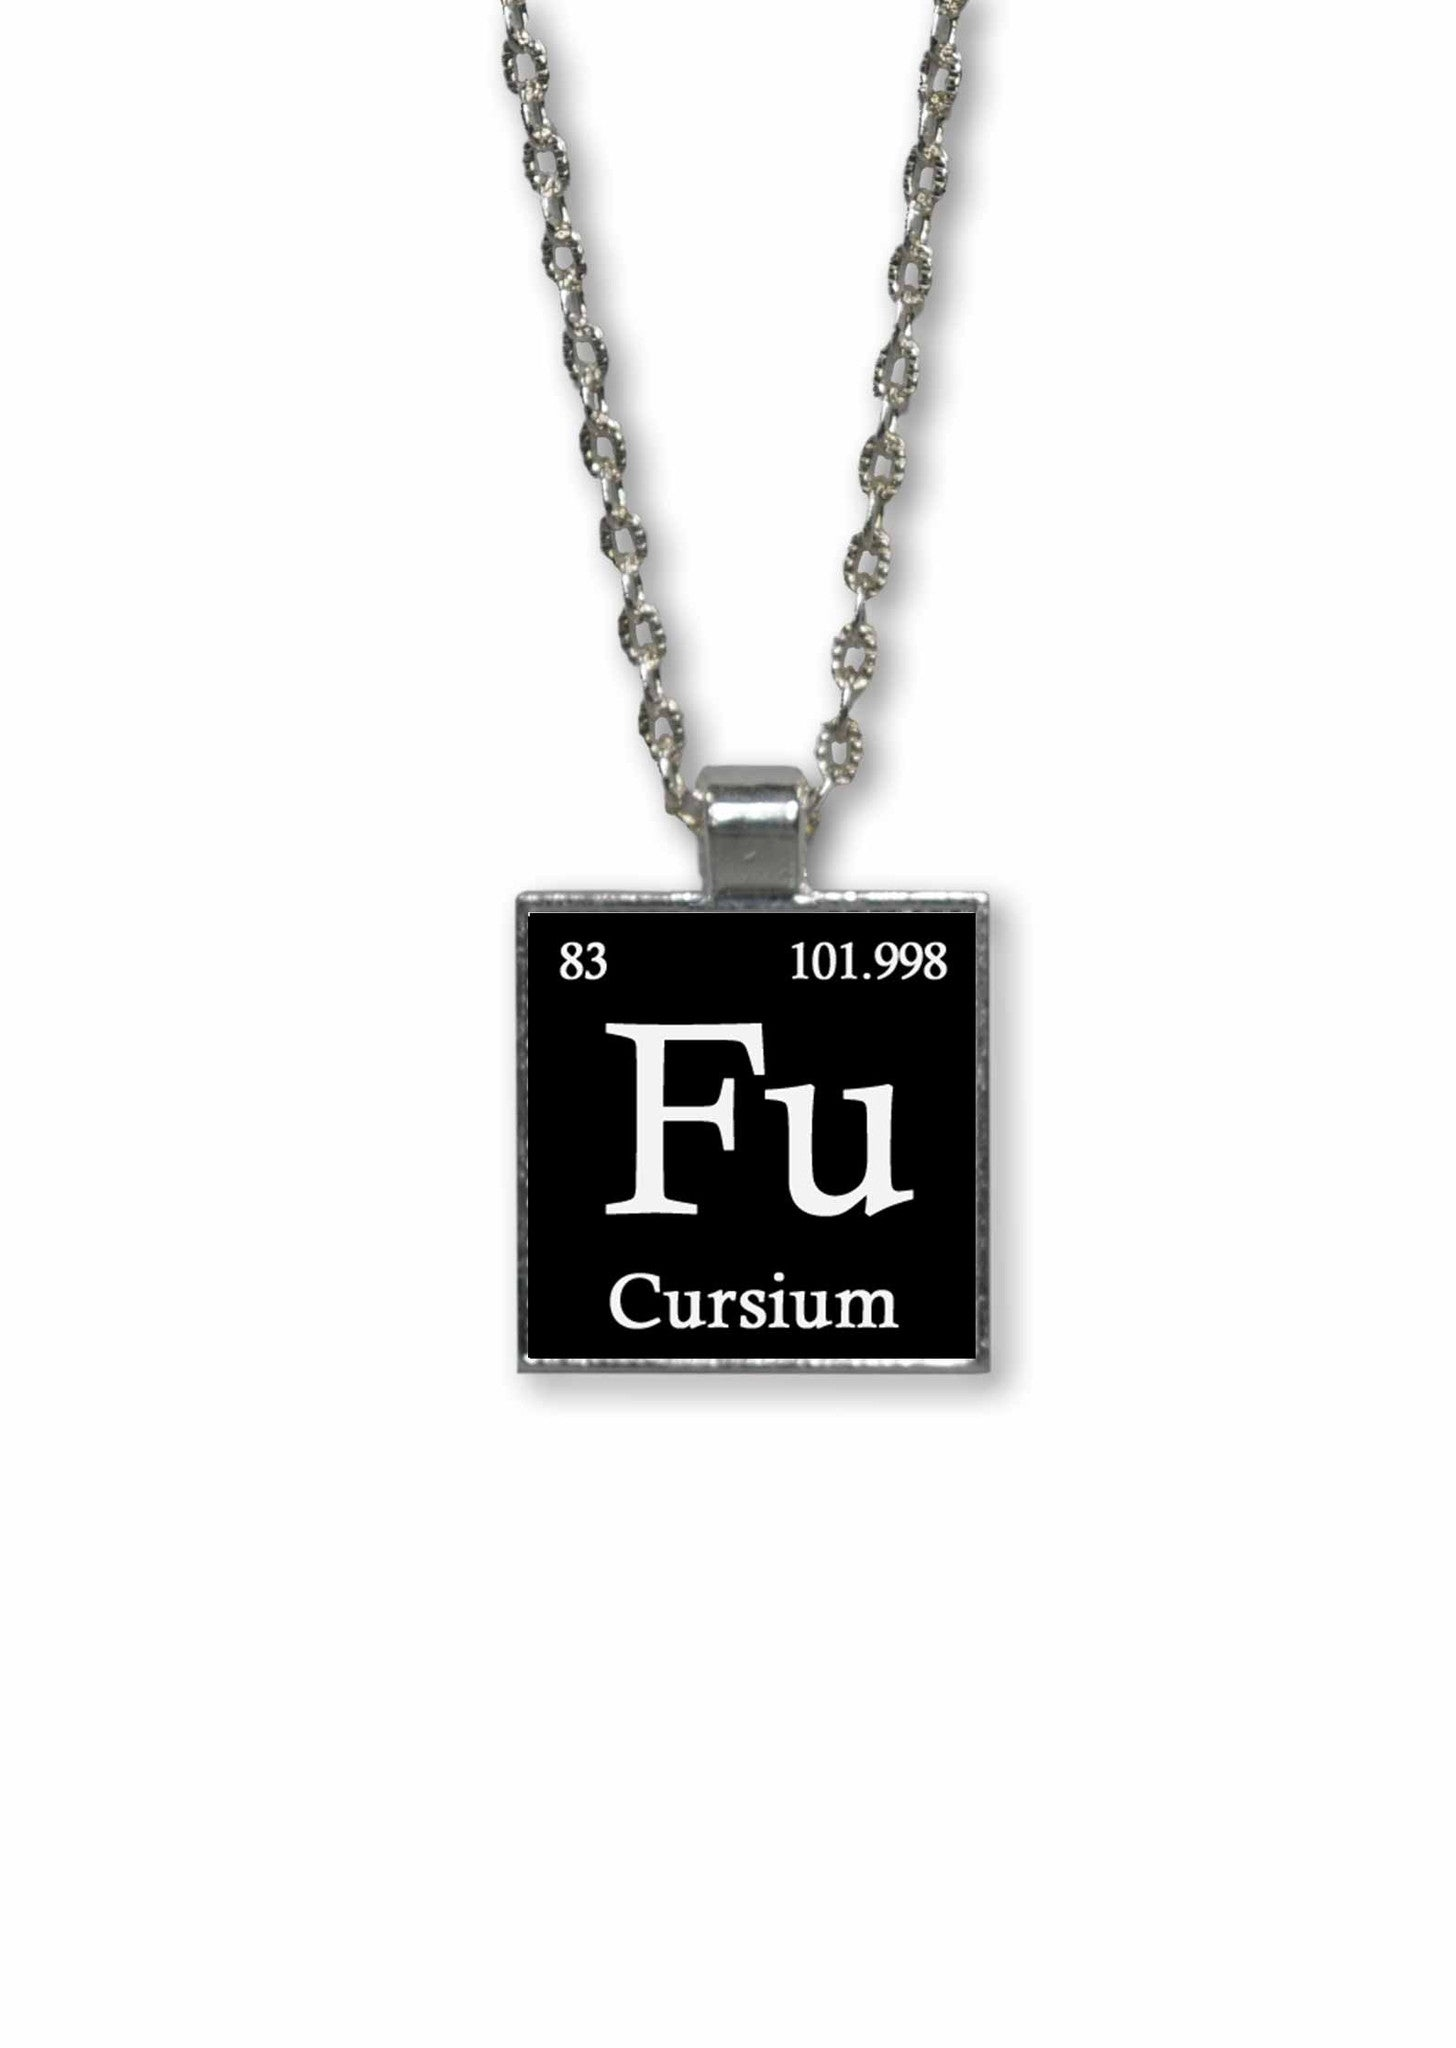 Funny made up periodic table elements 1 inch square pendant funny made up periodic table elements pendant necklace fu cursium urtaz Gallery